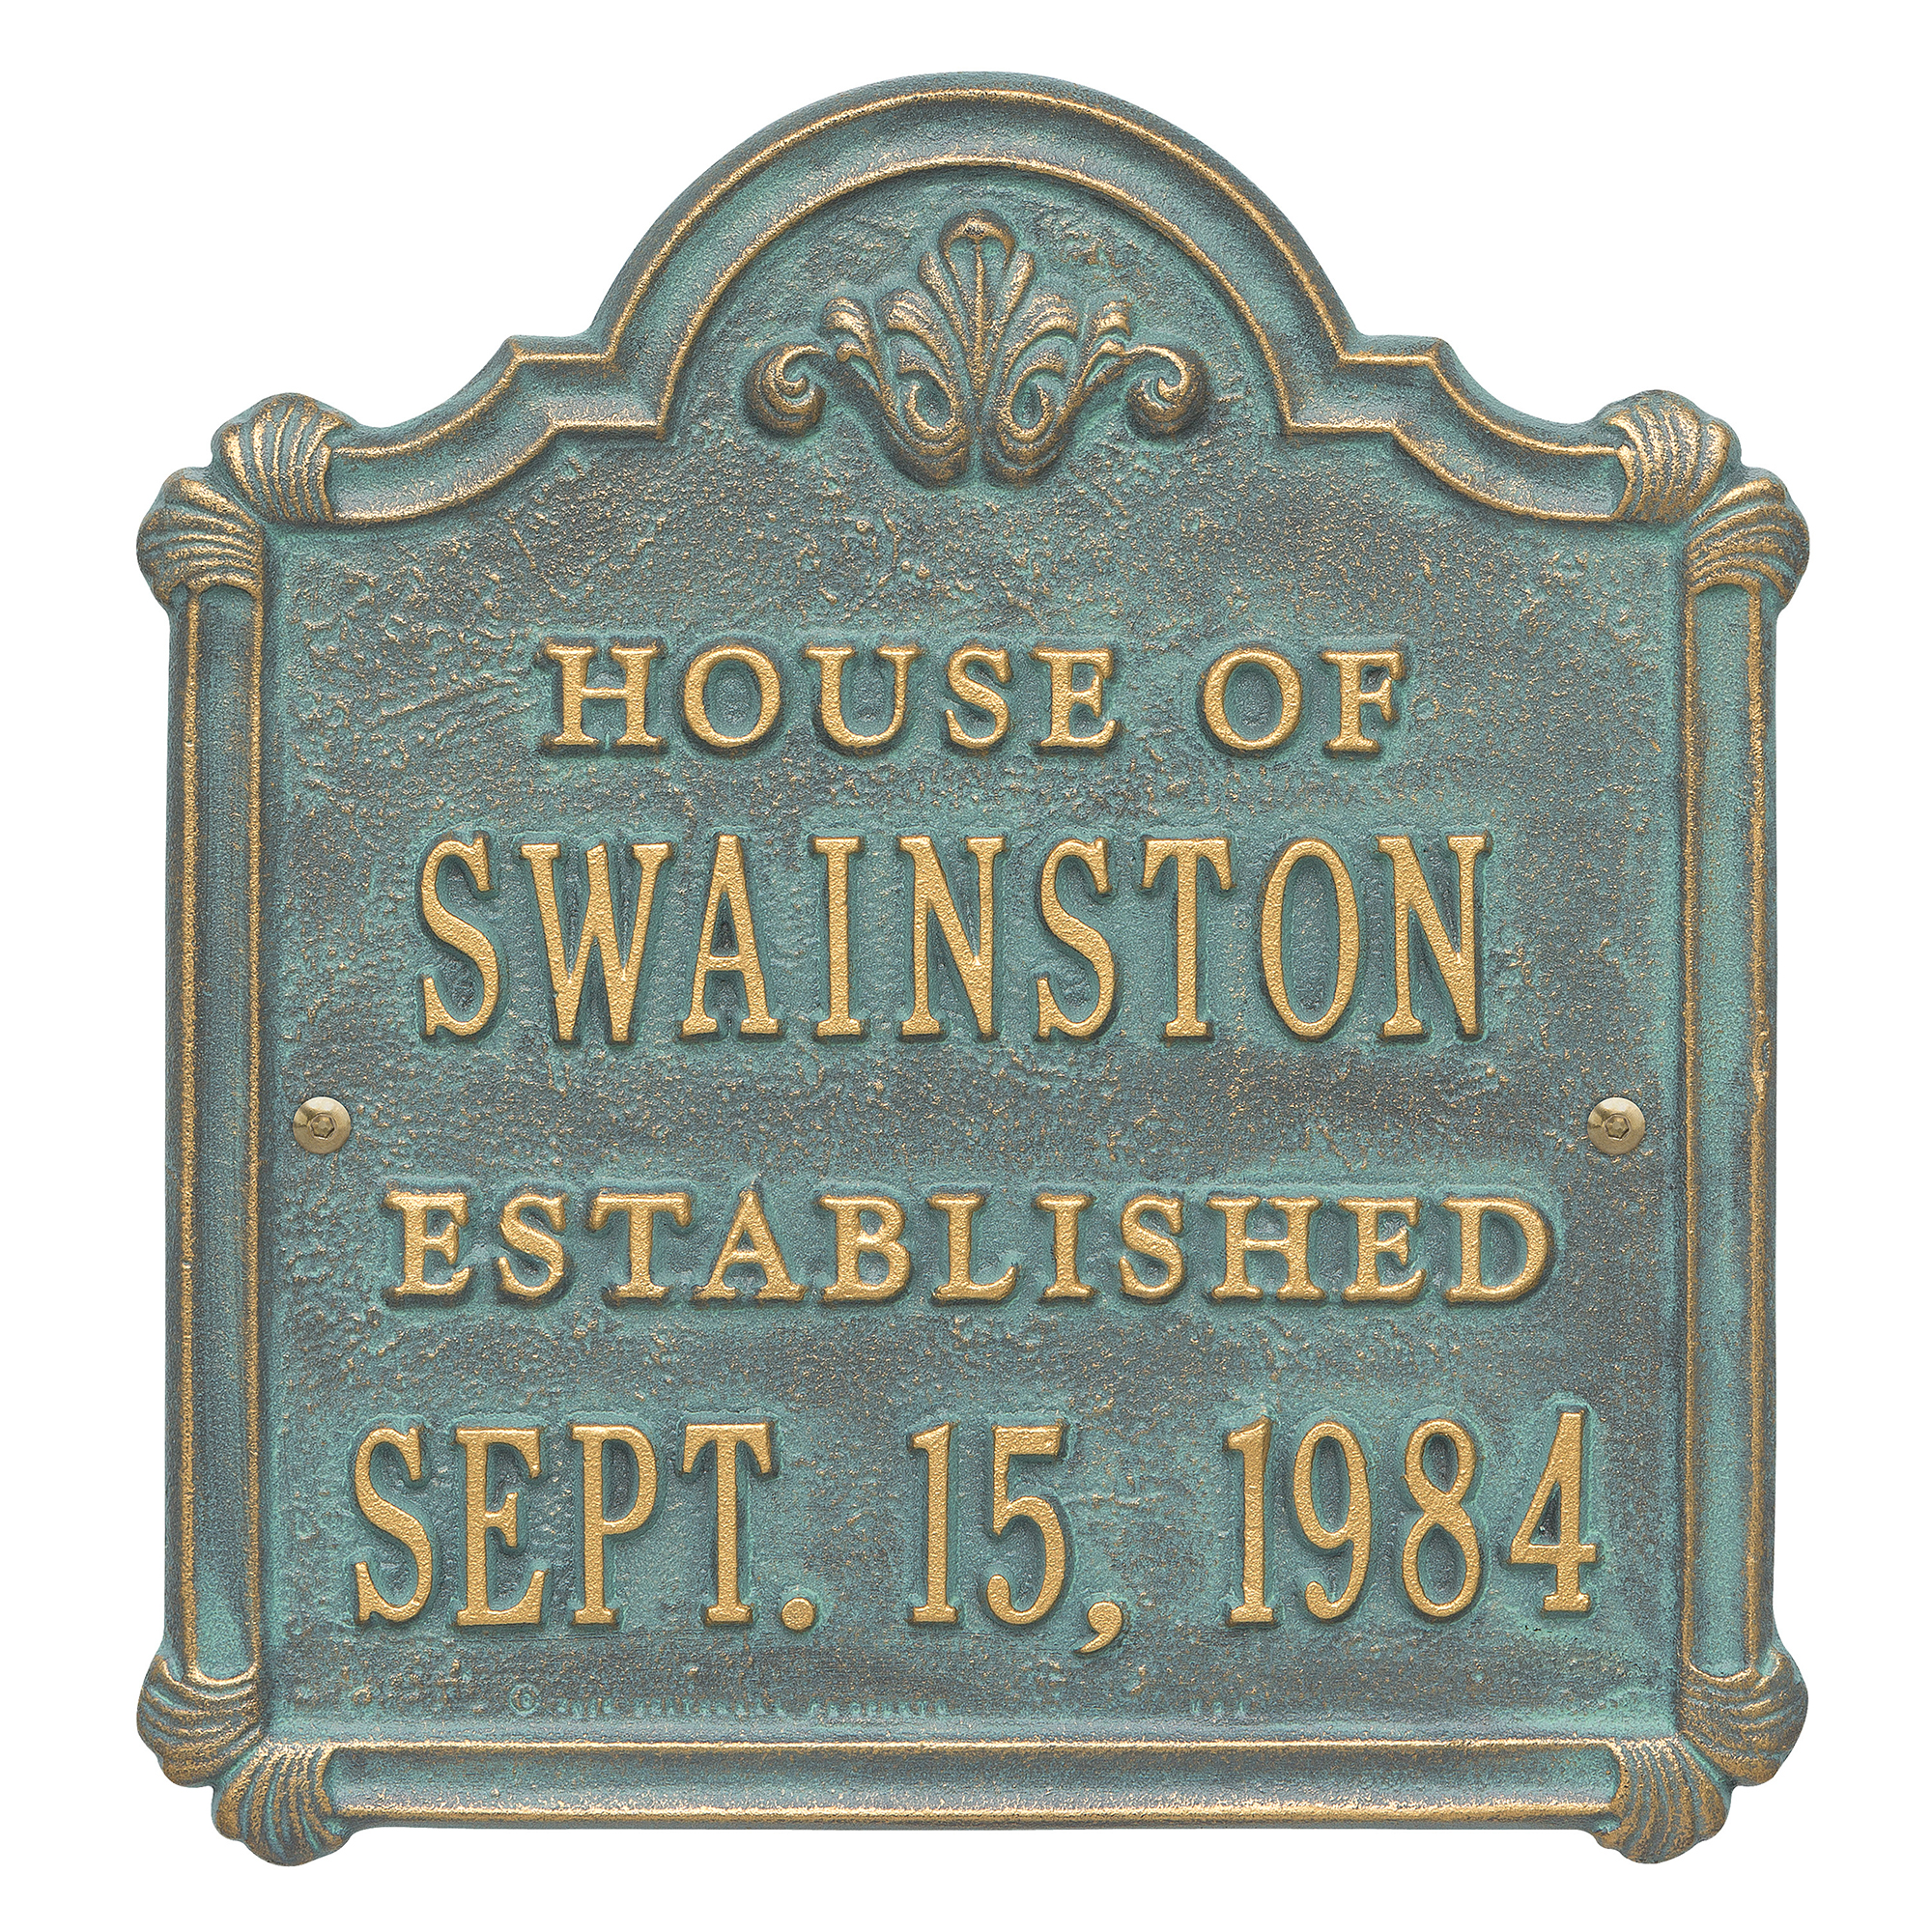 Personalized Whitehall Products Chatham Wedding/Anniversary Plaque with Bronze/Verde Finish